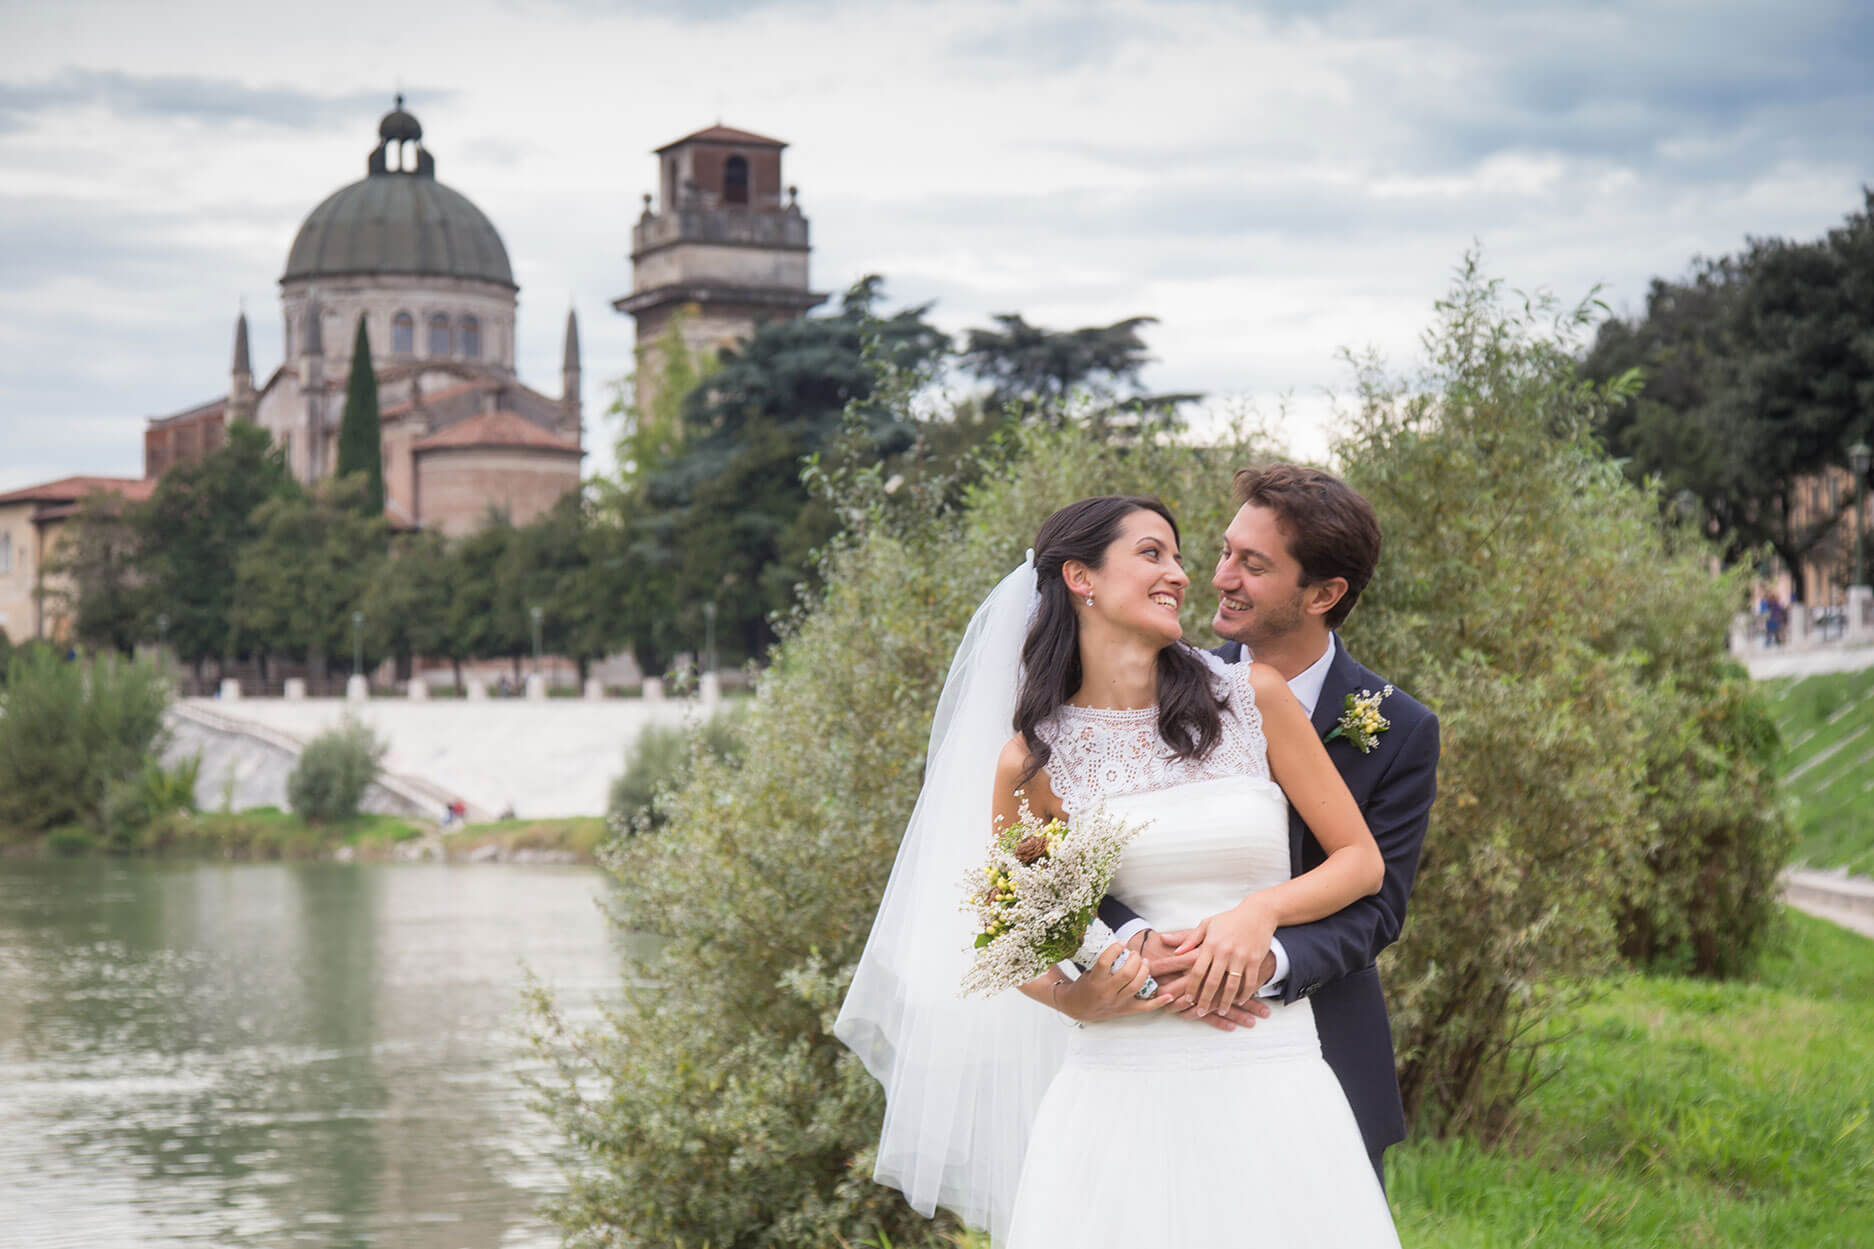 Francesca-Ferrati-WeddingIMG_0948